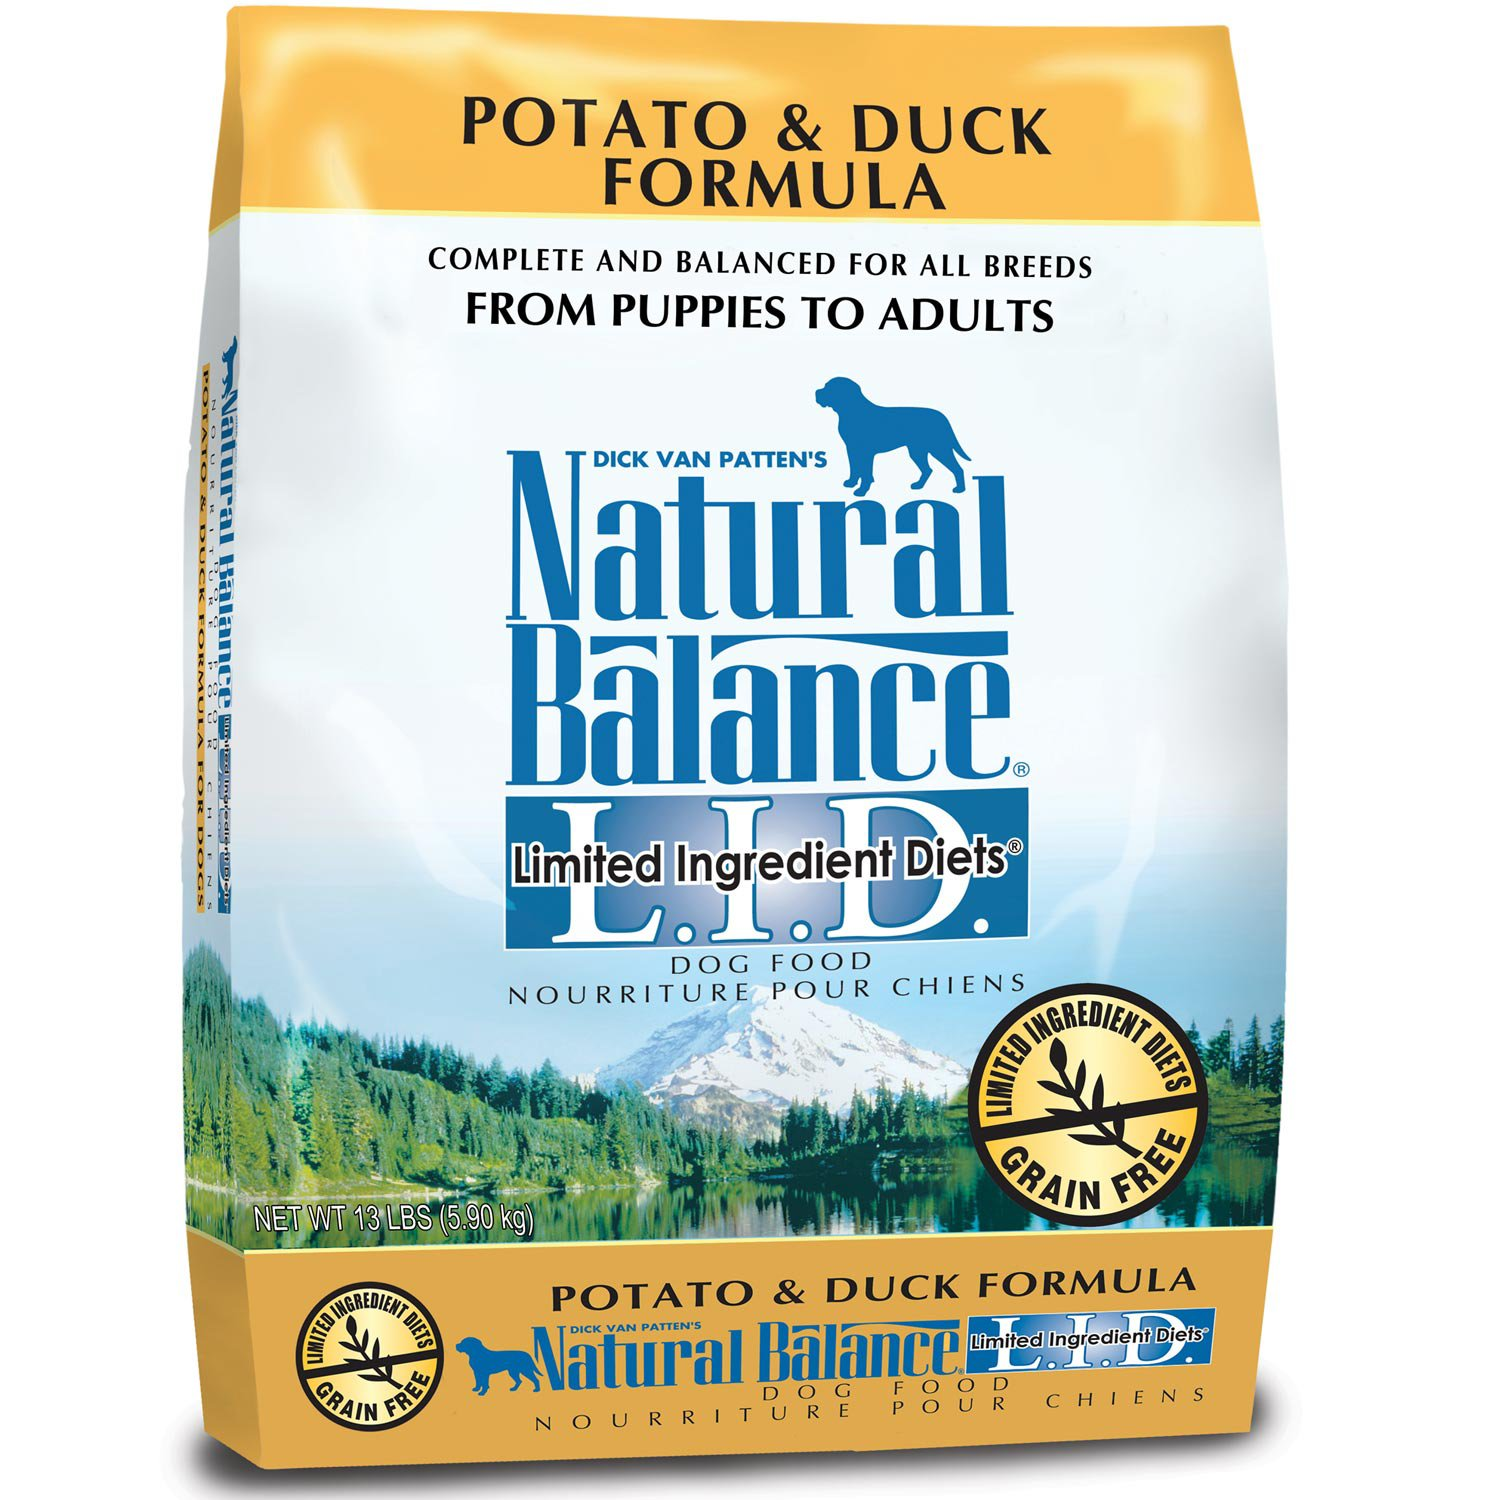 Top 313 Complaints and Reviews about Natural Balance Pet Foods